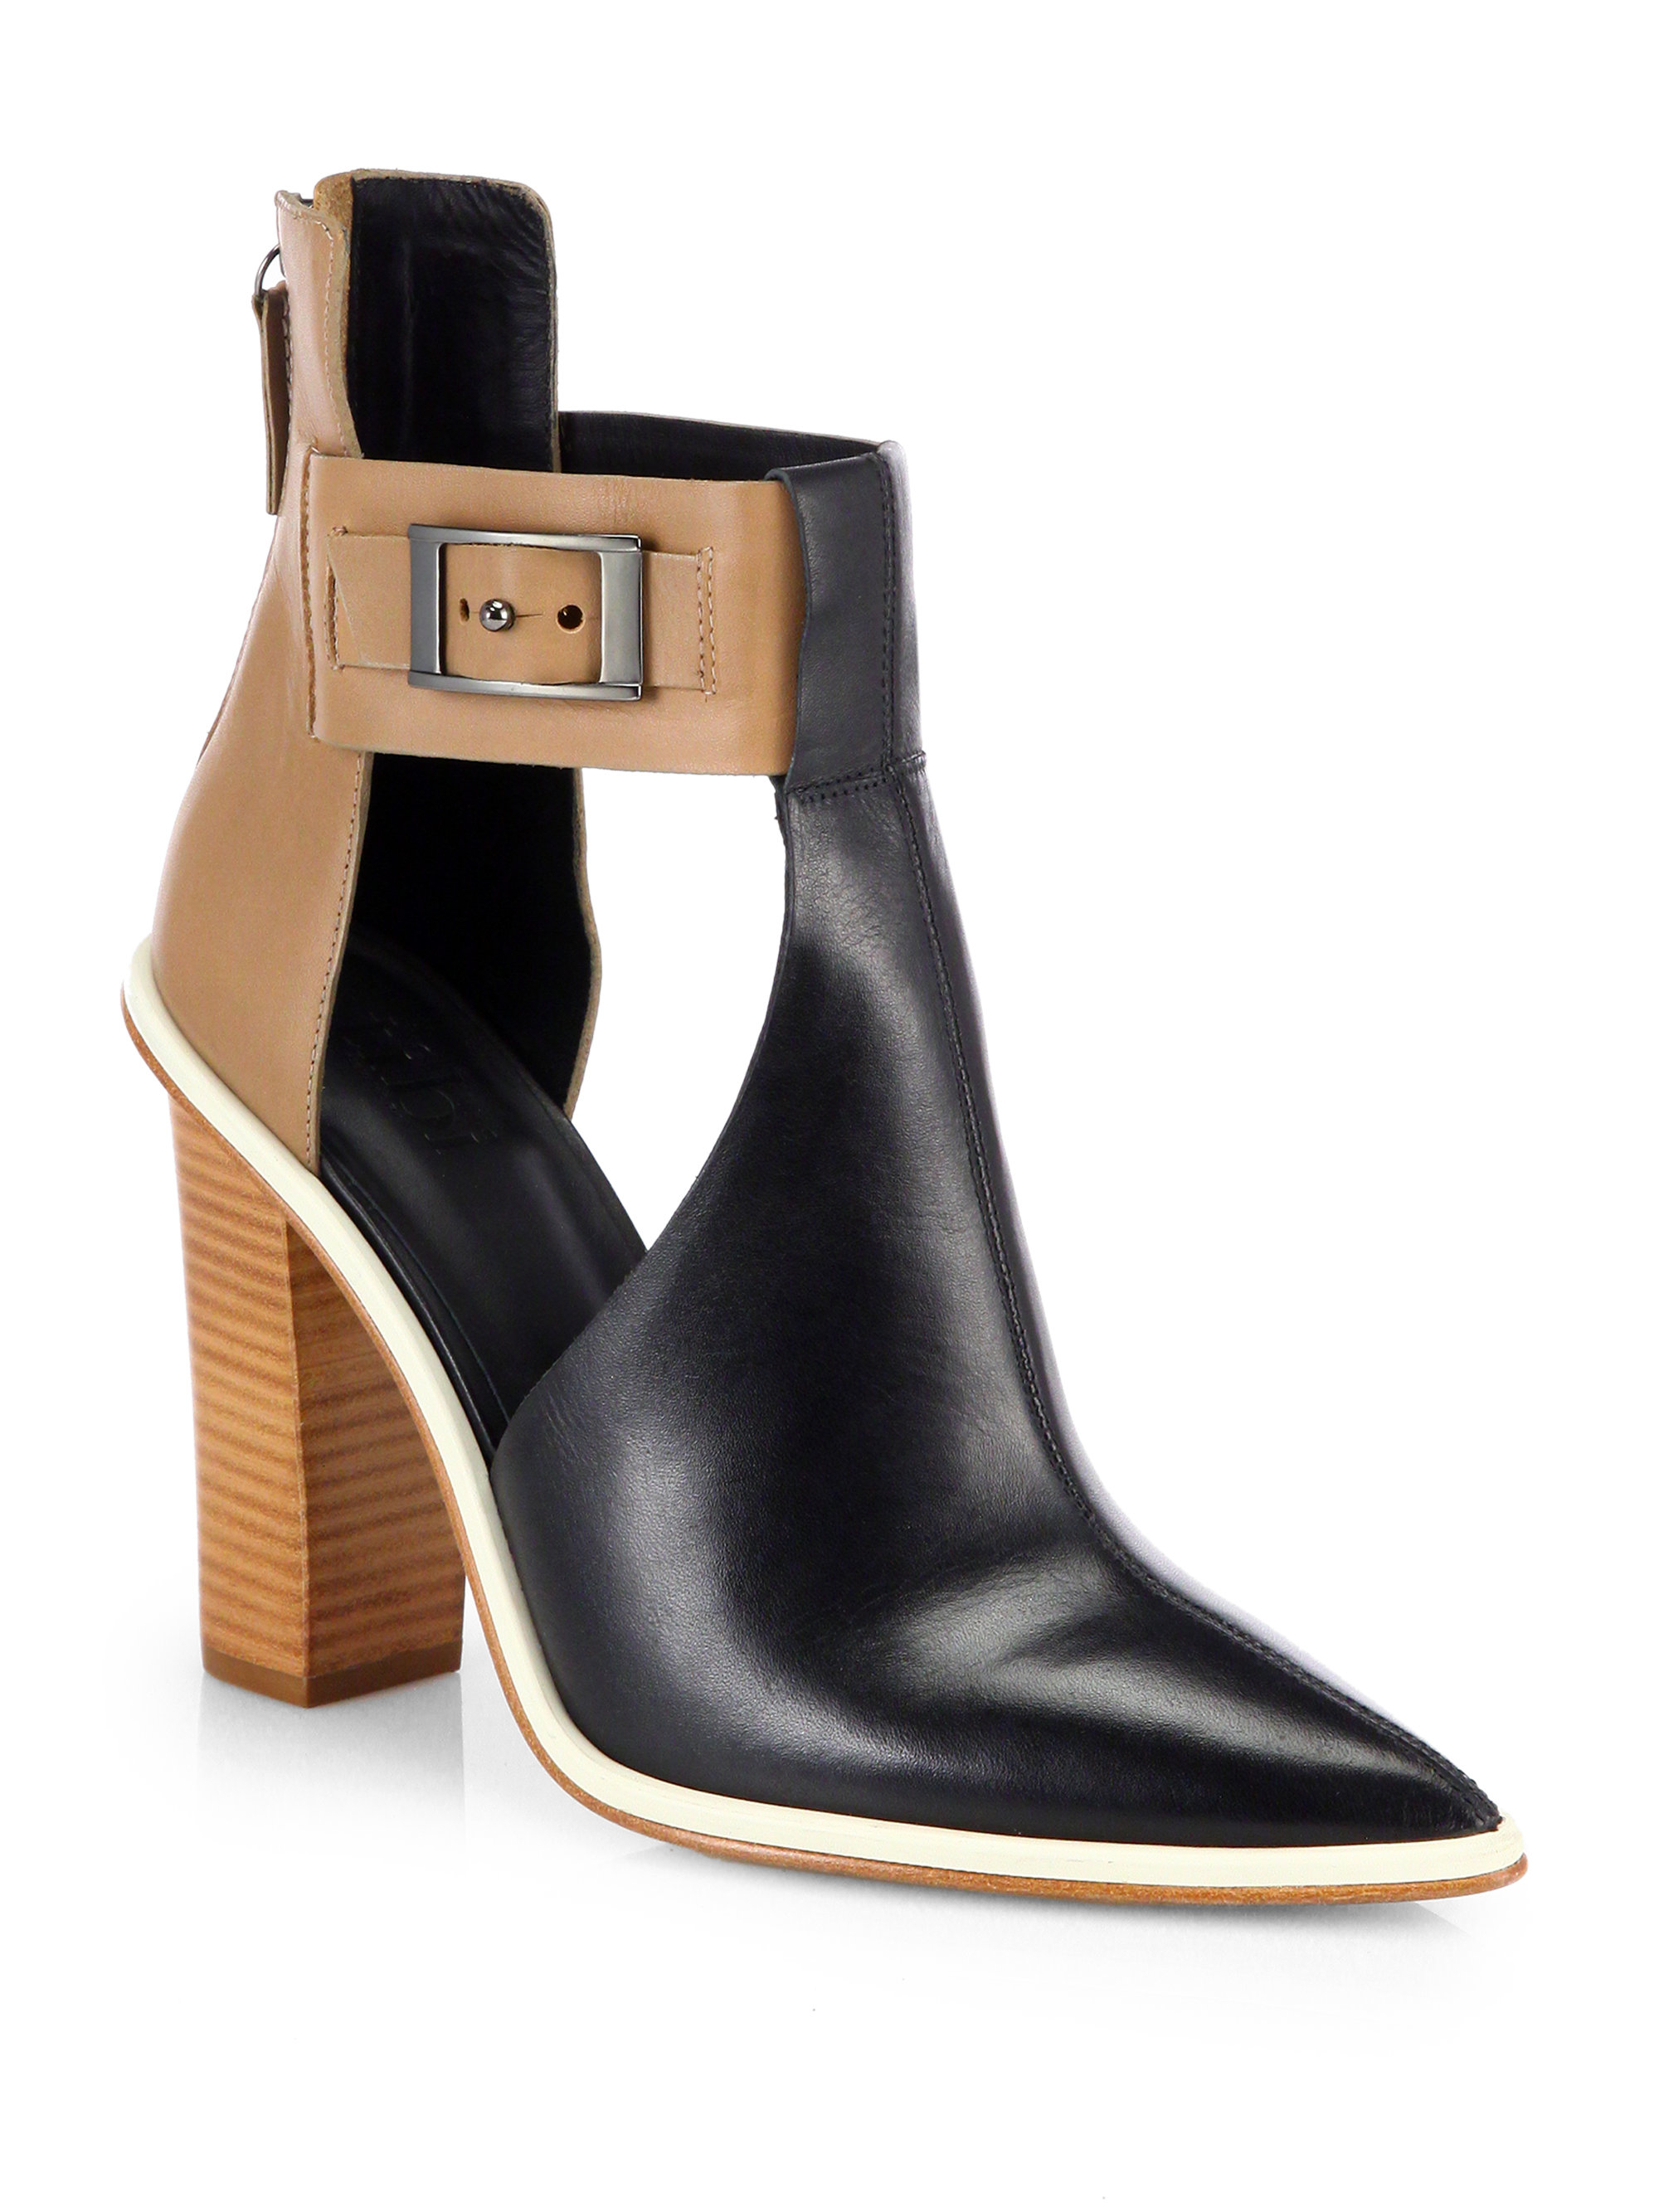 235913828a3 Tibi Black Leather Two-Tone Cutout Ankle Boots